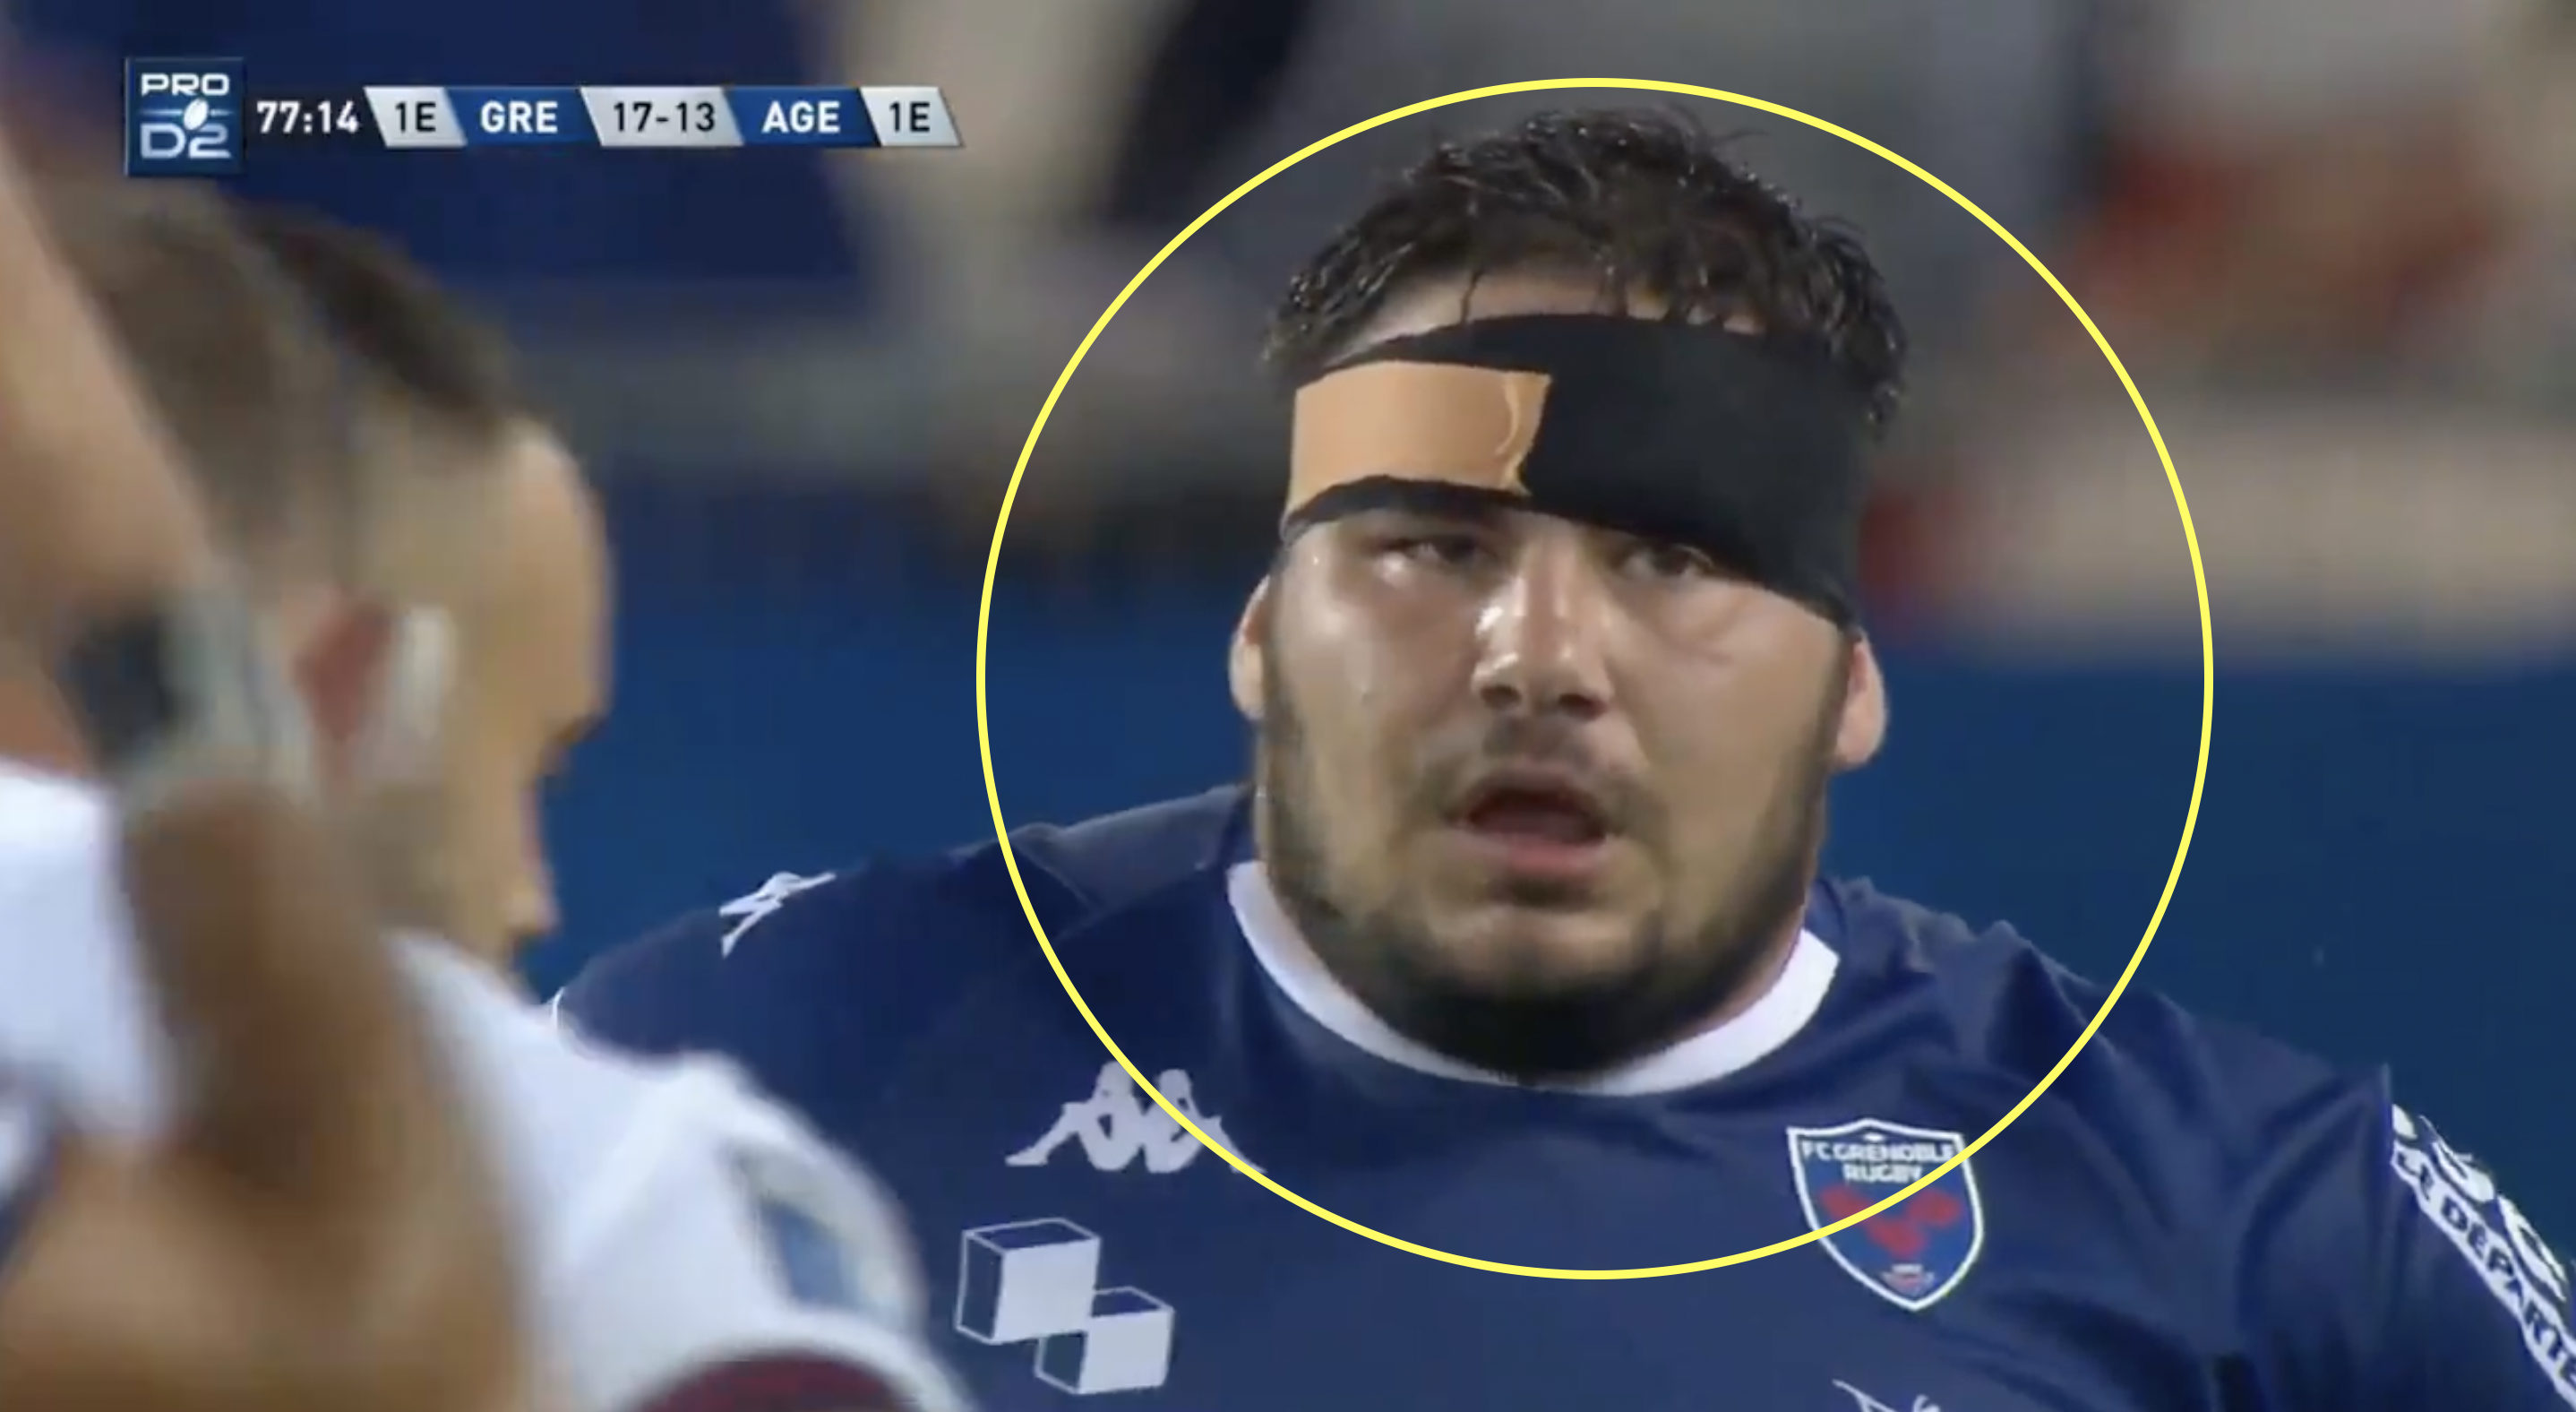 Grenoble prop produces game-changing kick for the ages